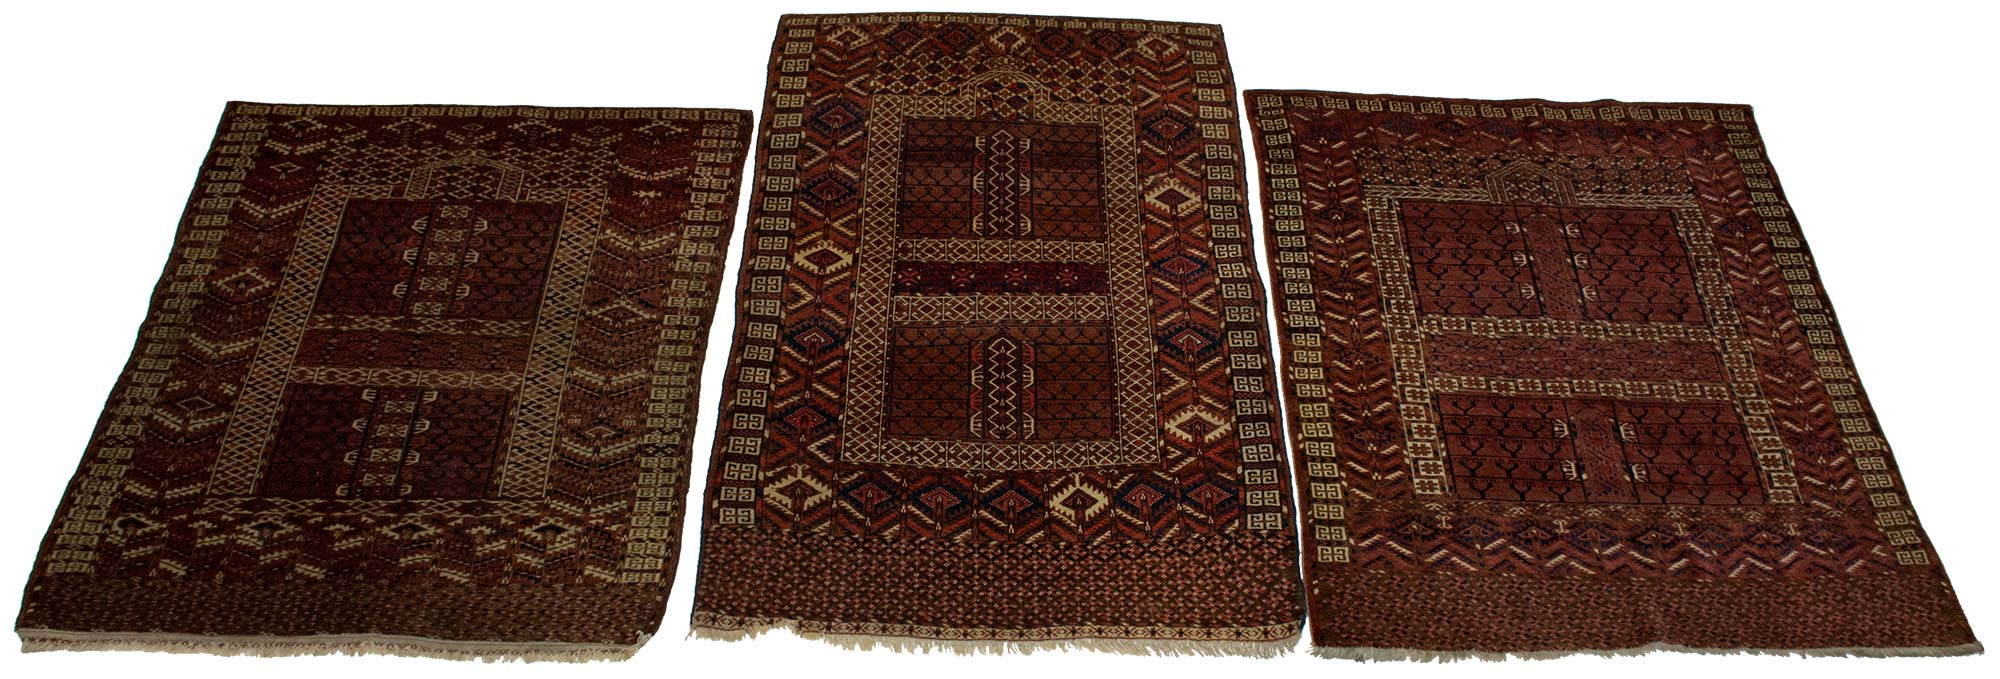 Lot image - Three Tekke Ensi Rugs